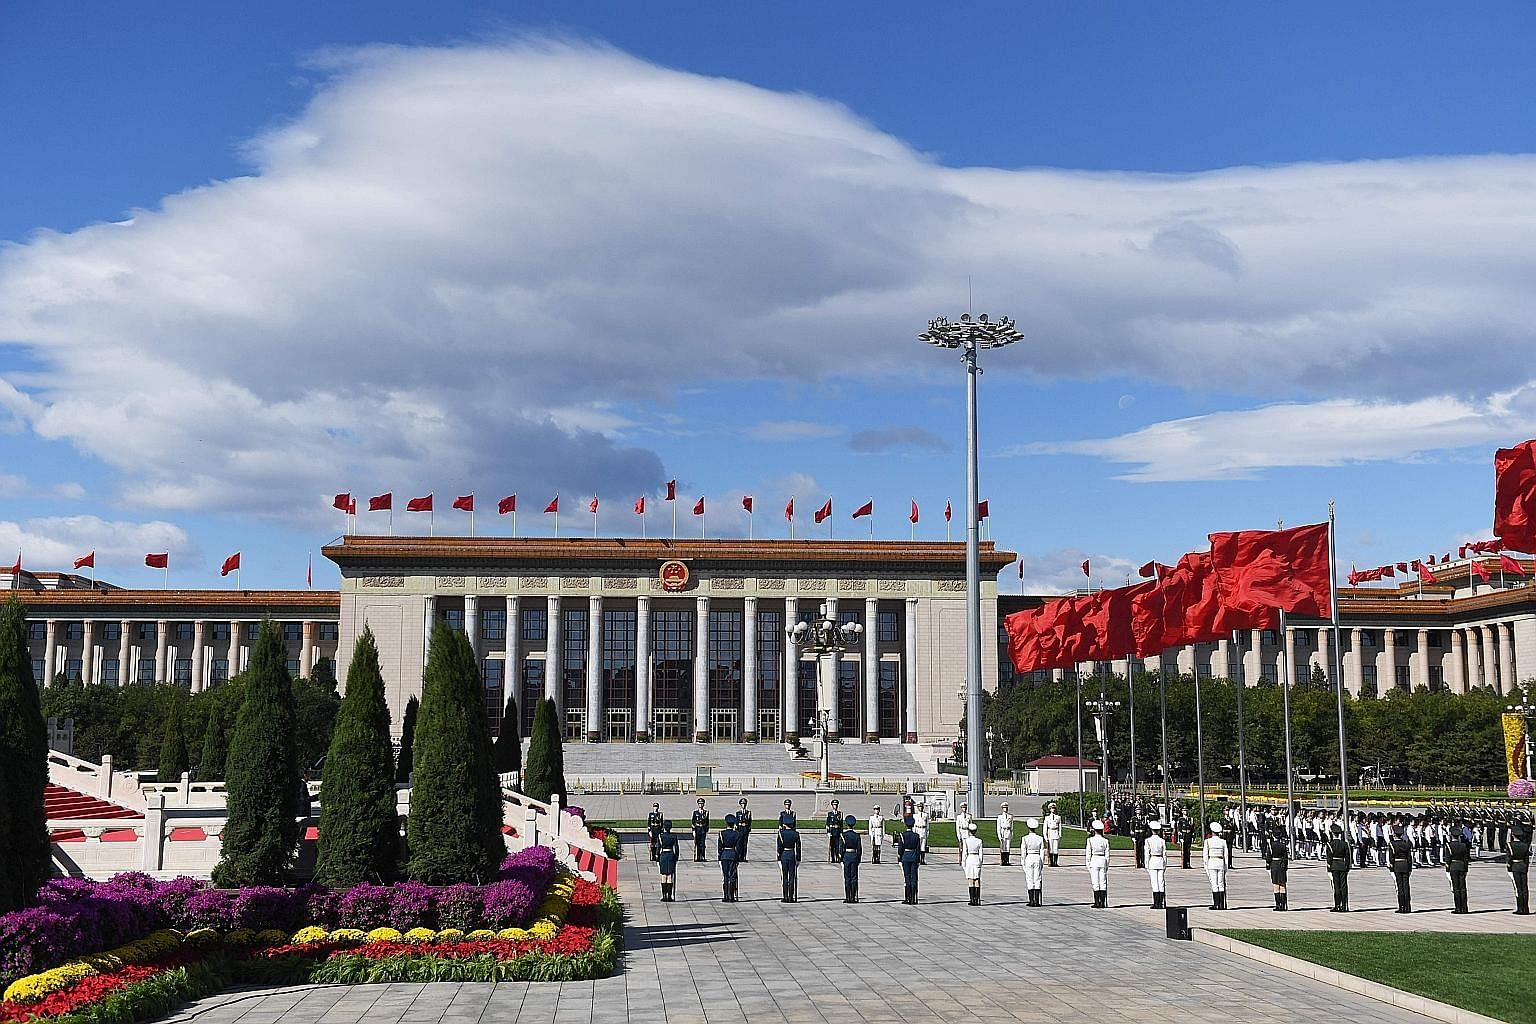 A military honour guard at Beijing's Tiananmen Square during a ceremony yesterday, on the eve of China's national day, when Chinese leaders honoured those who lost their lives serving the country and laid wreaths at the Monument to the People's Heroe